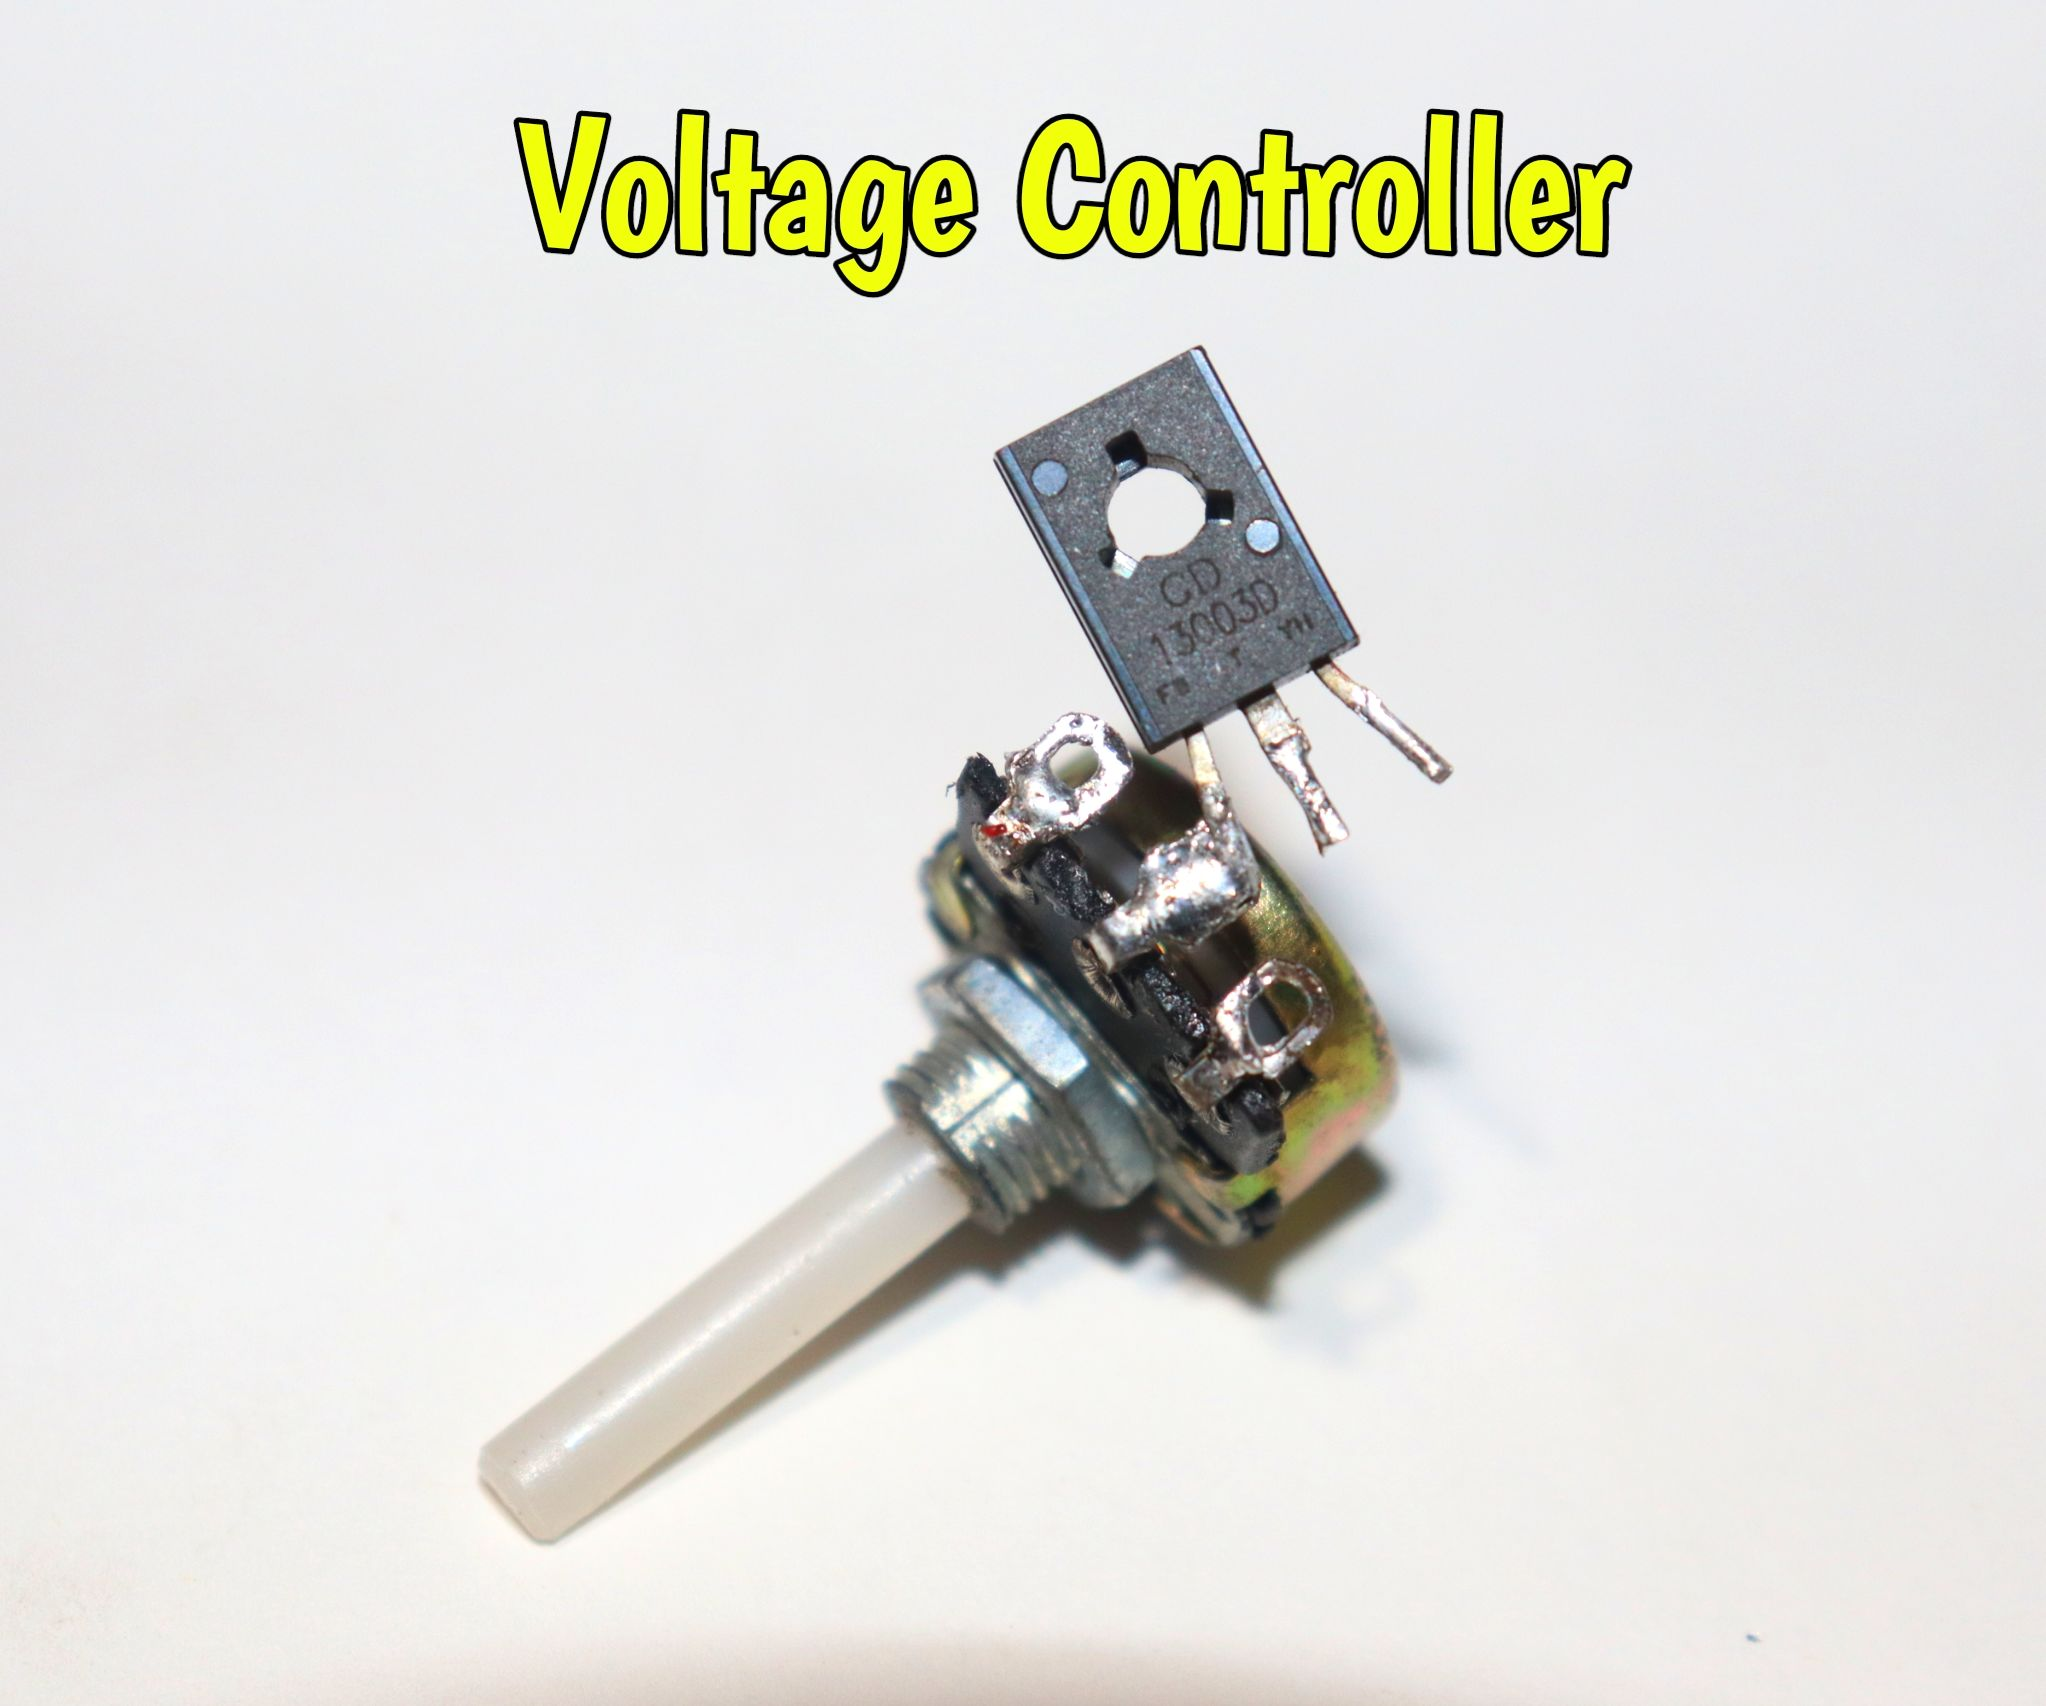 How to Make Voltage Controller Circuit Using 13003 Transistor